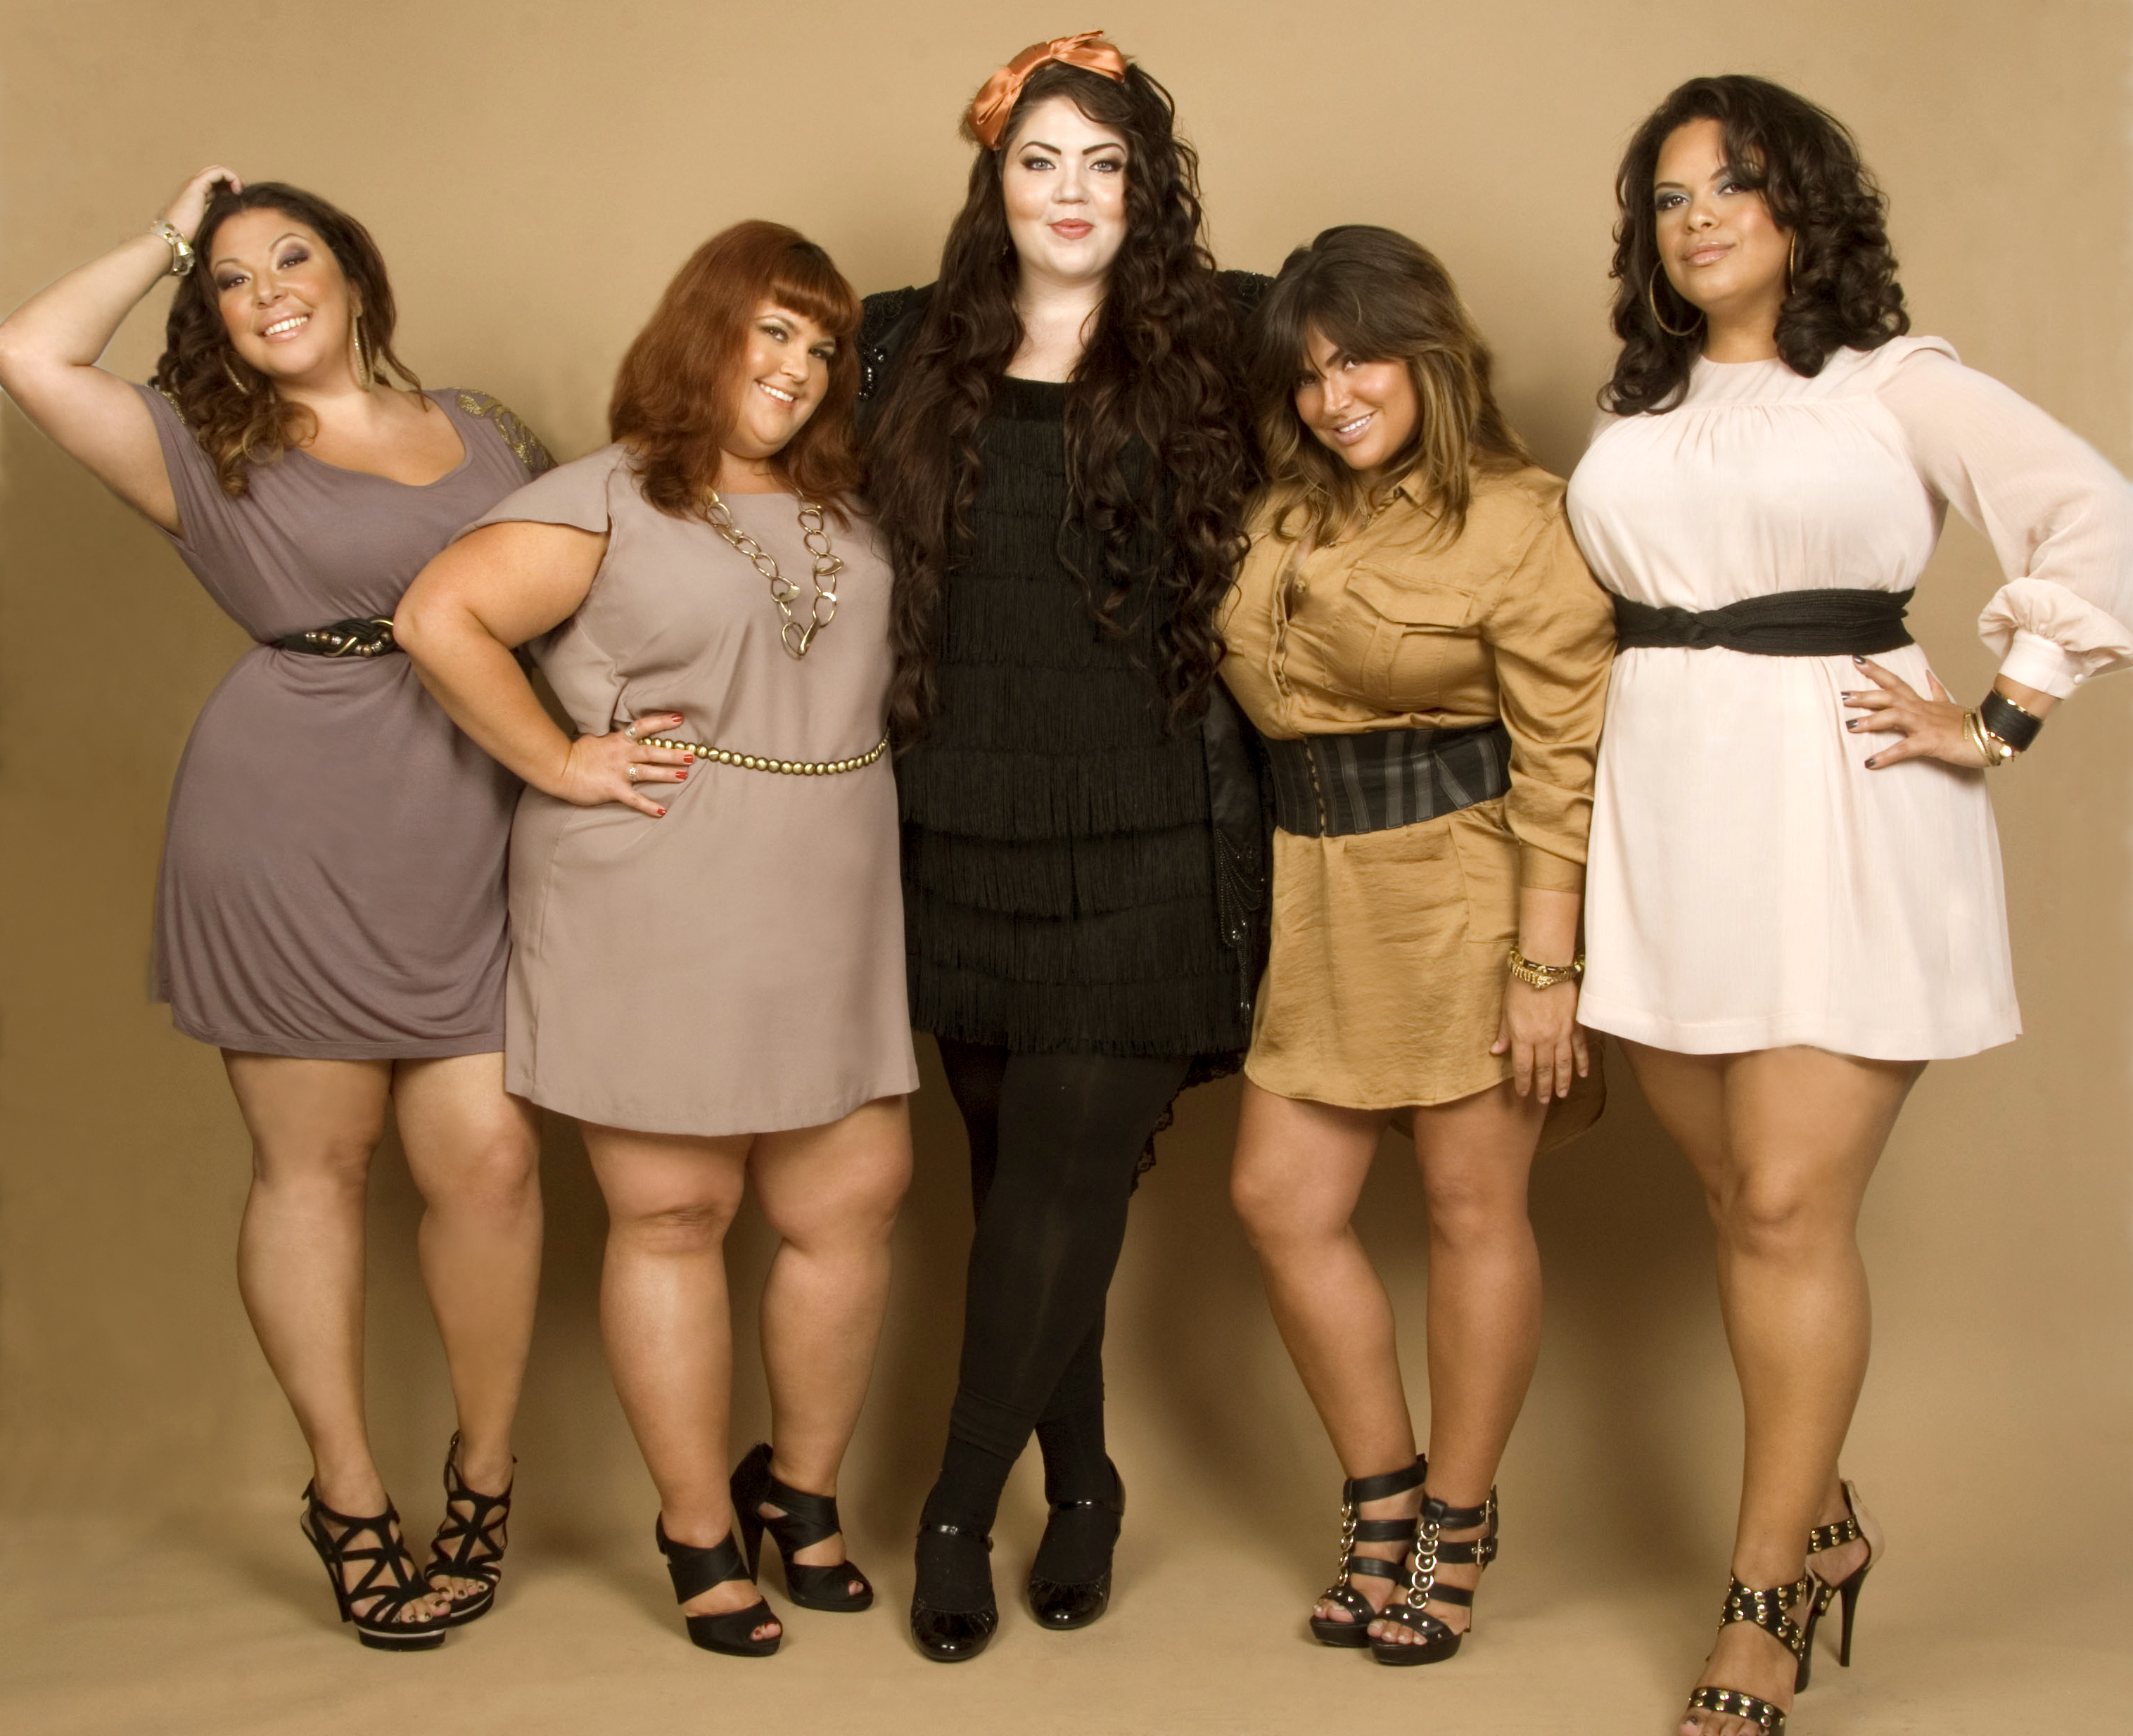 Plus size reality dating show